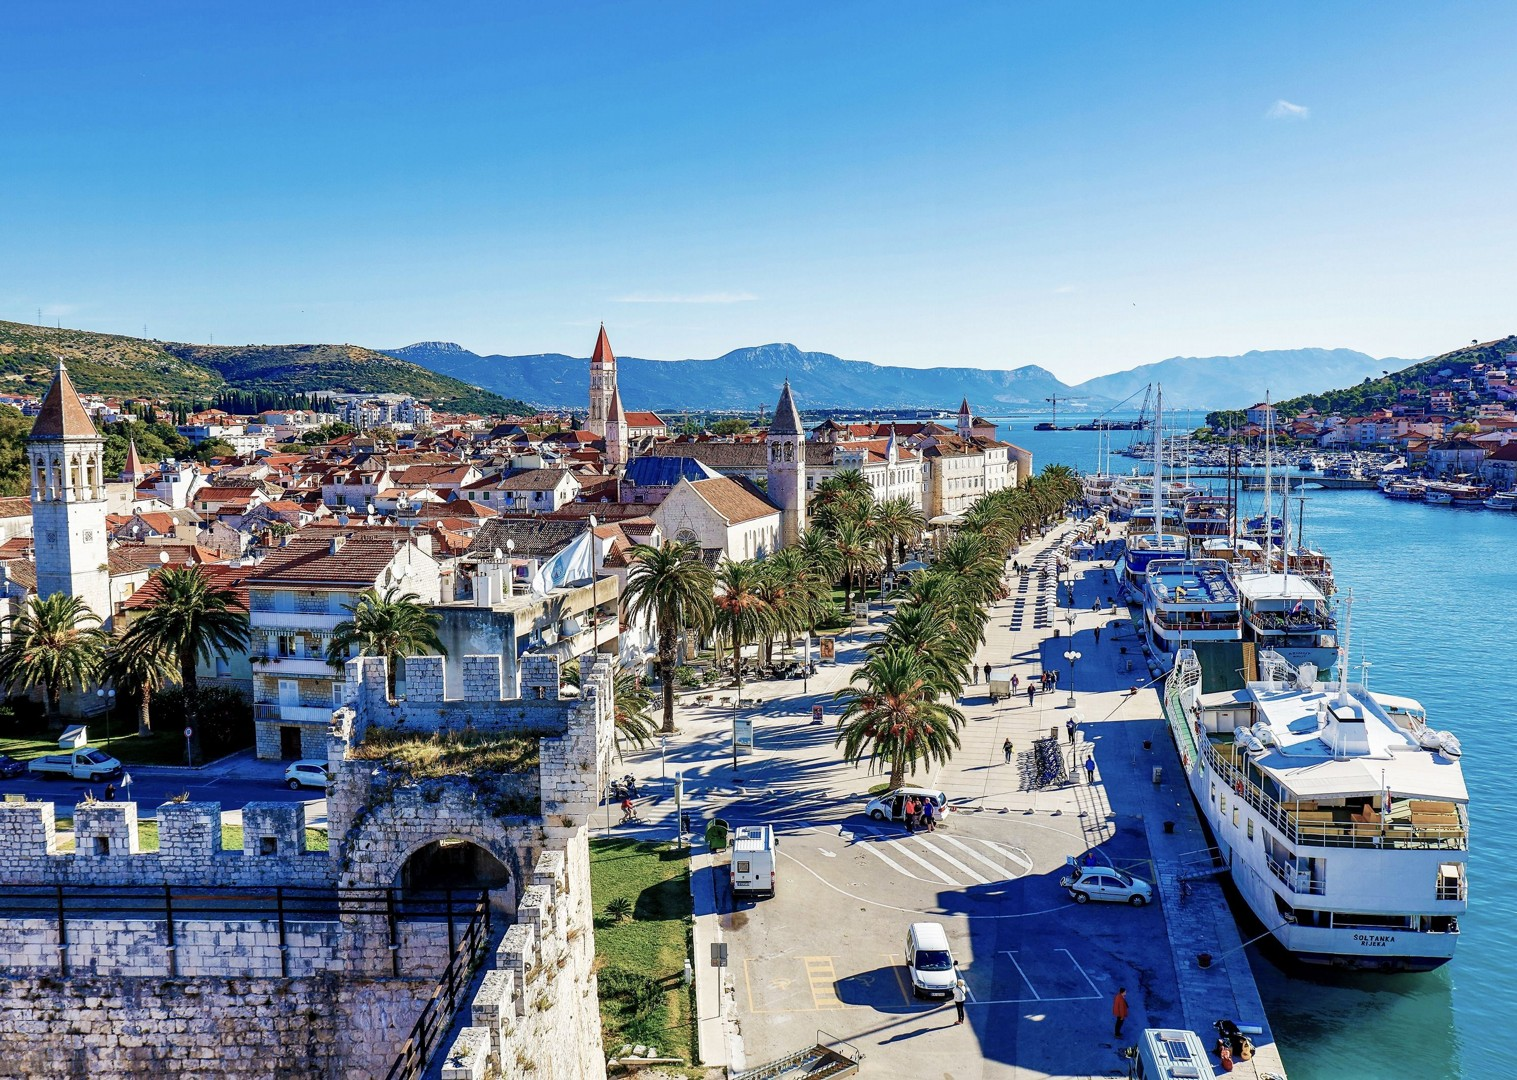 rogoznica-croatia-cycling-holiday-boat.jpg - Croatia - Dalmatian National Parks and Islands Plus - Bike and Boat Holiday - Leisure Cycling